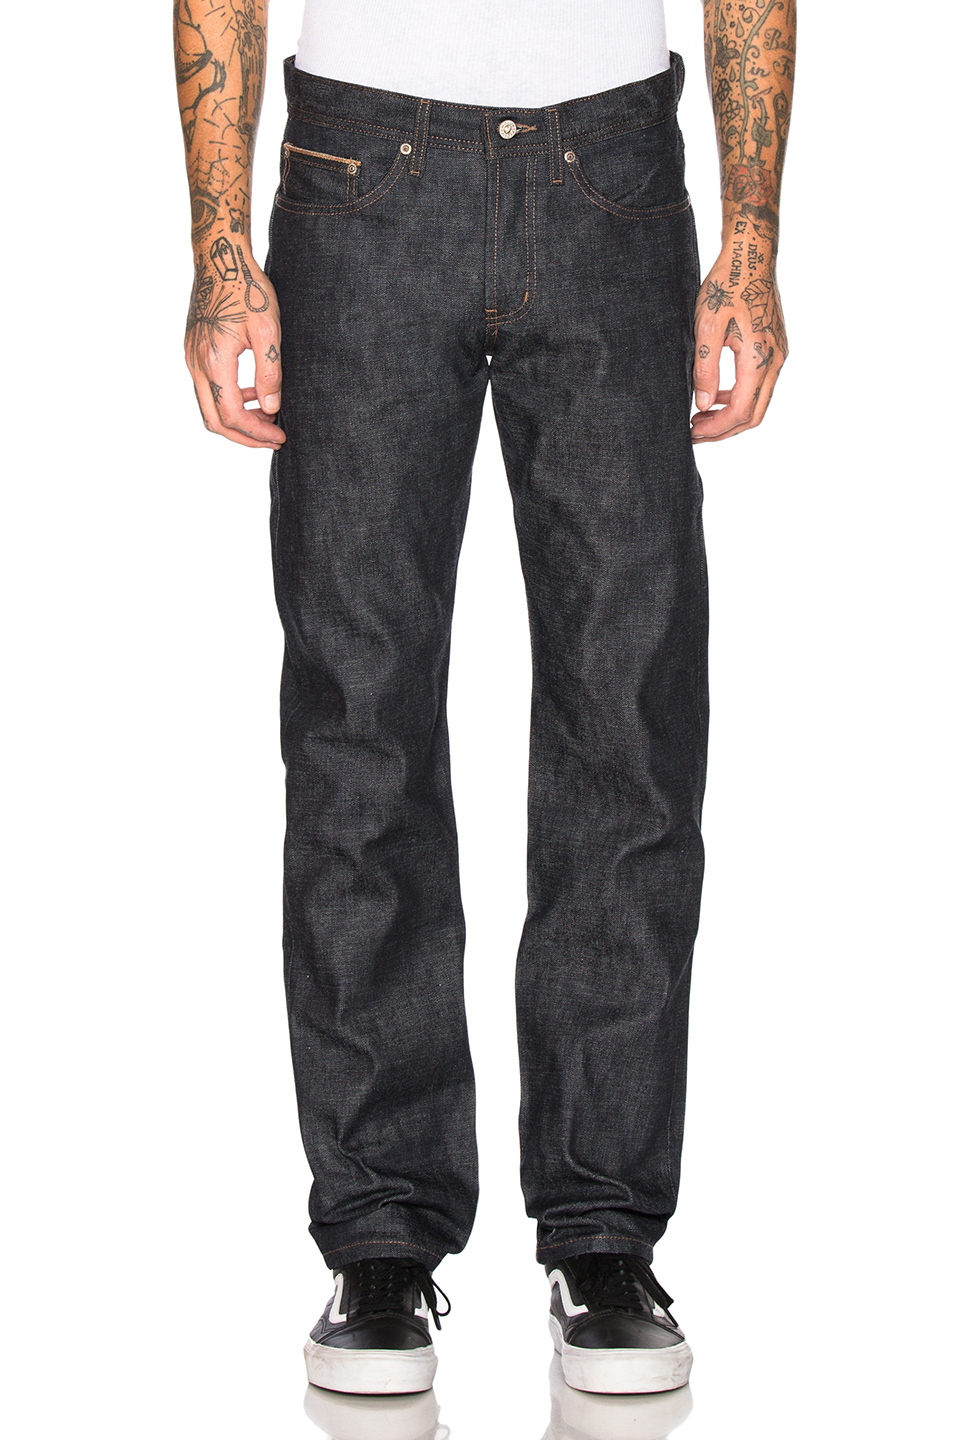 ac6d510d Buy Original Naked & Famous Denim Weird Guy Jeans at Indonesia ...